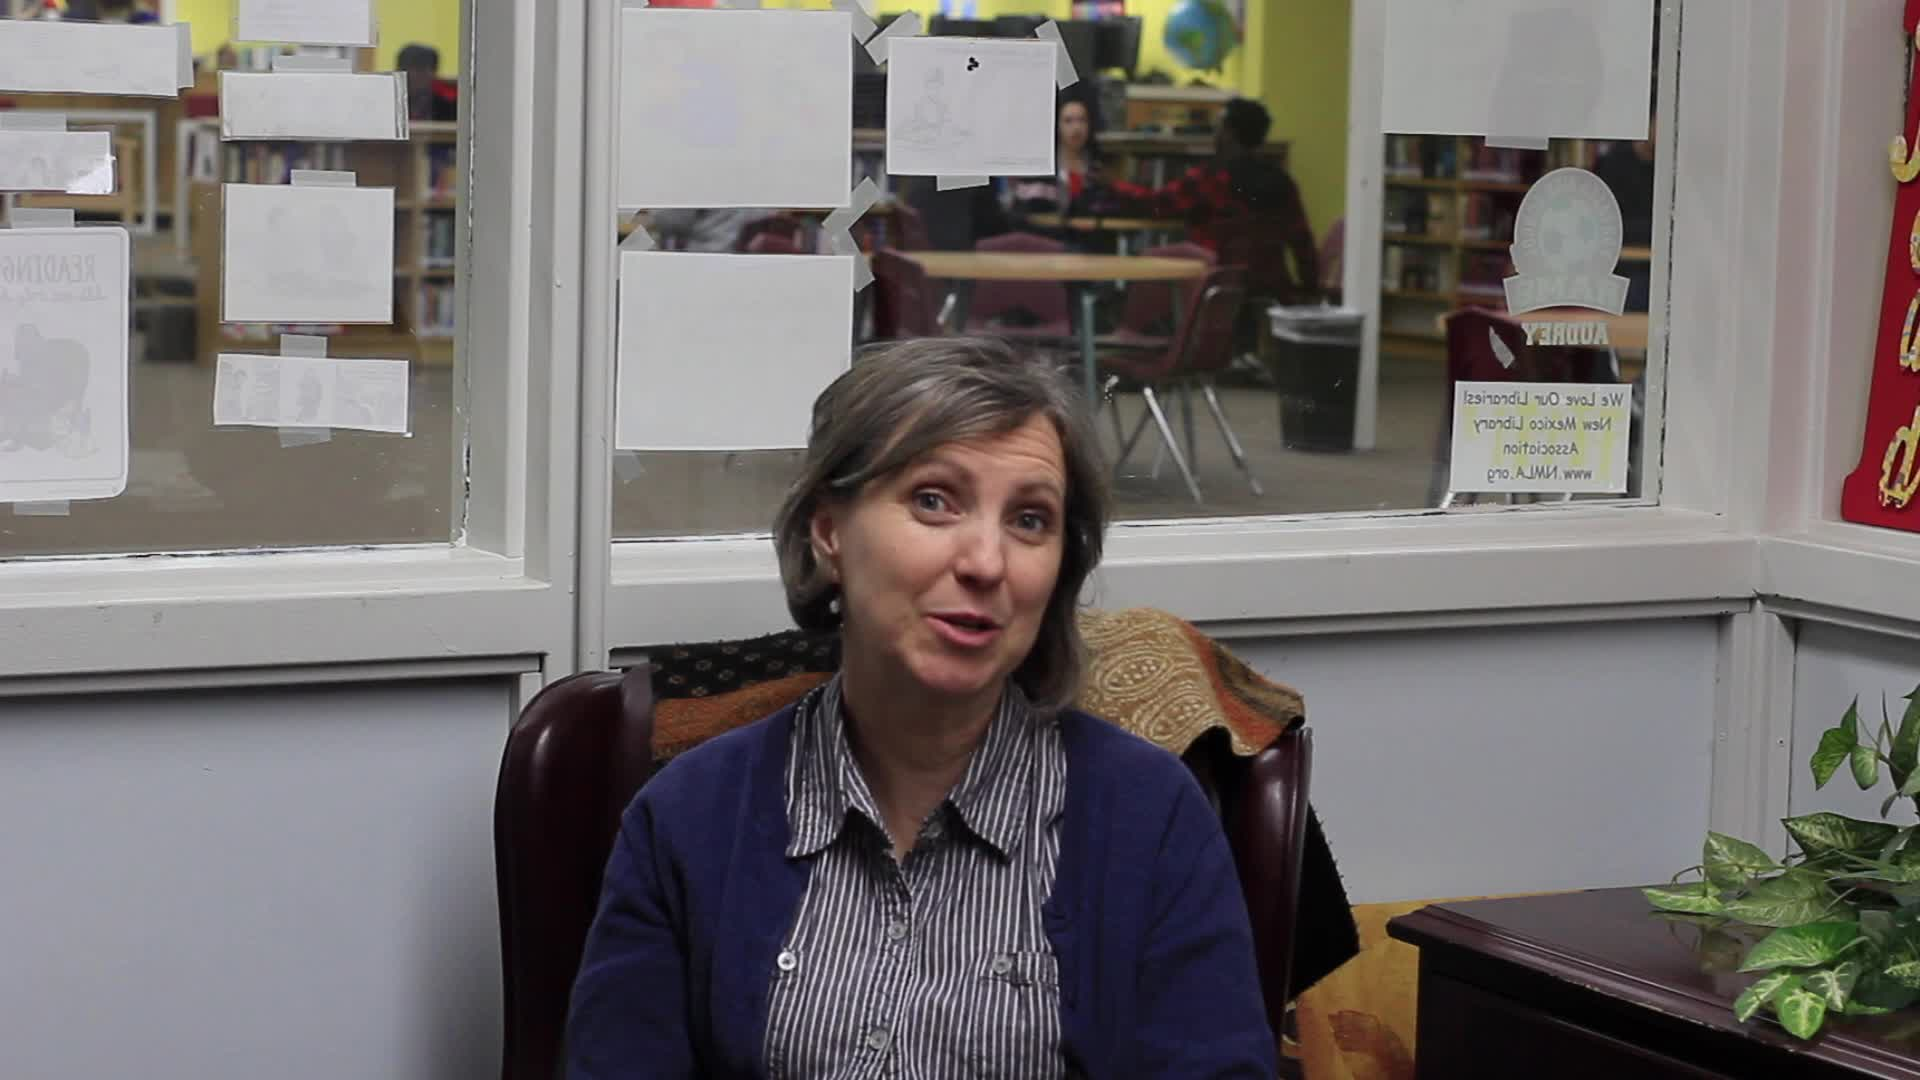 Interview with PHS Librarian Heather Christensen by Madison Chandler